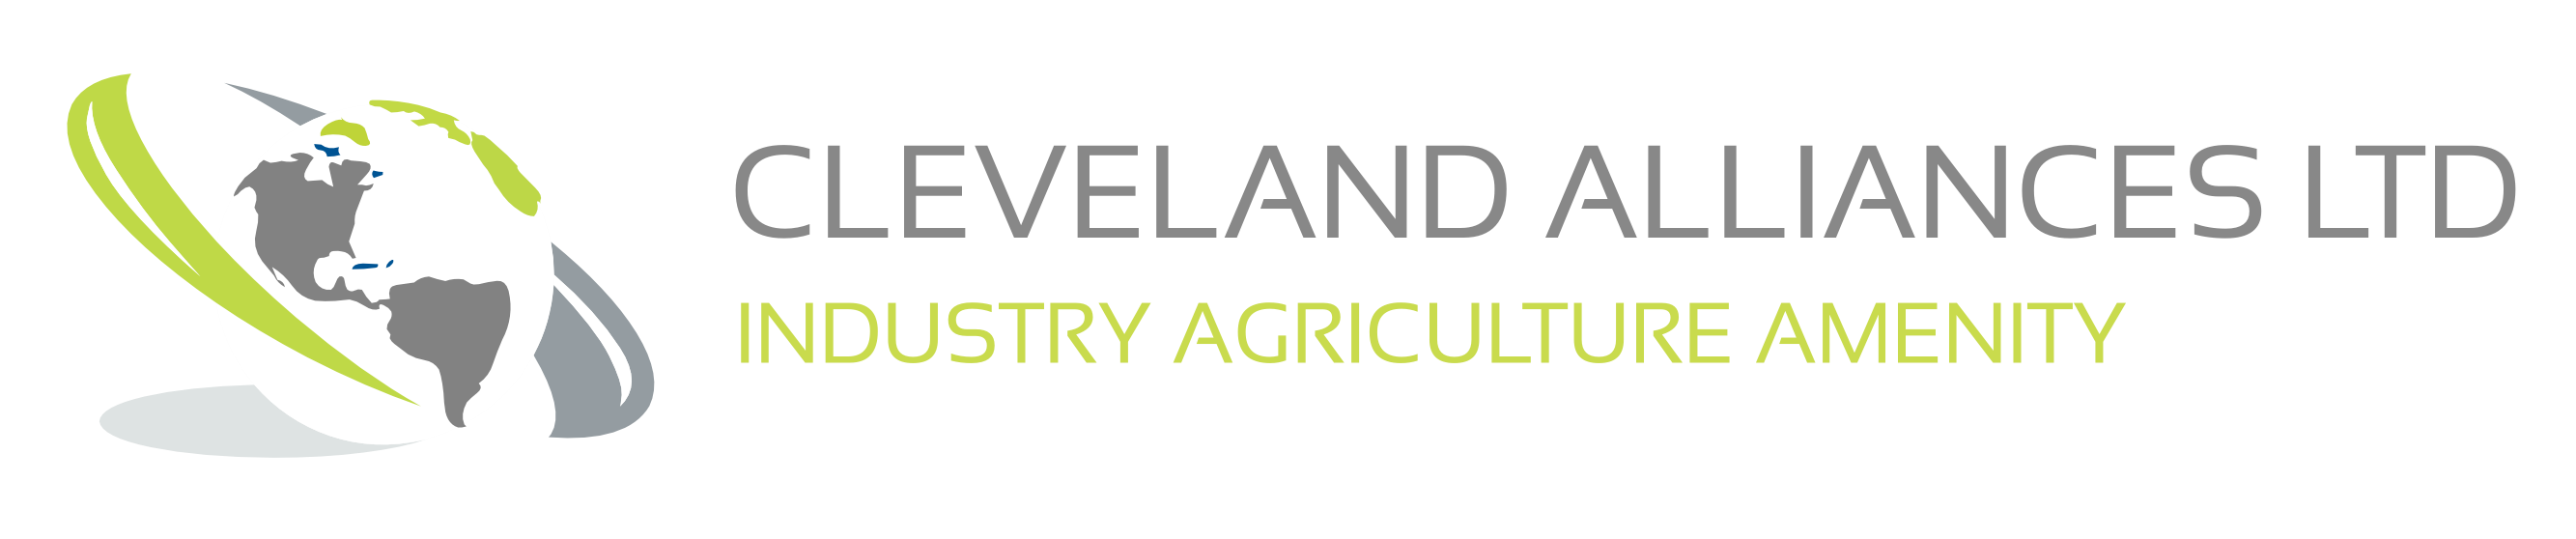 Cleveland Alliances Ltd